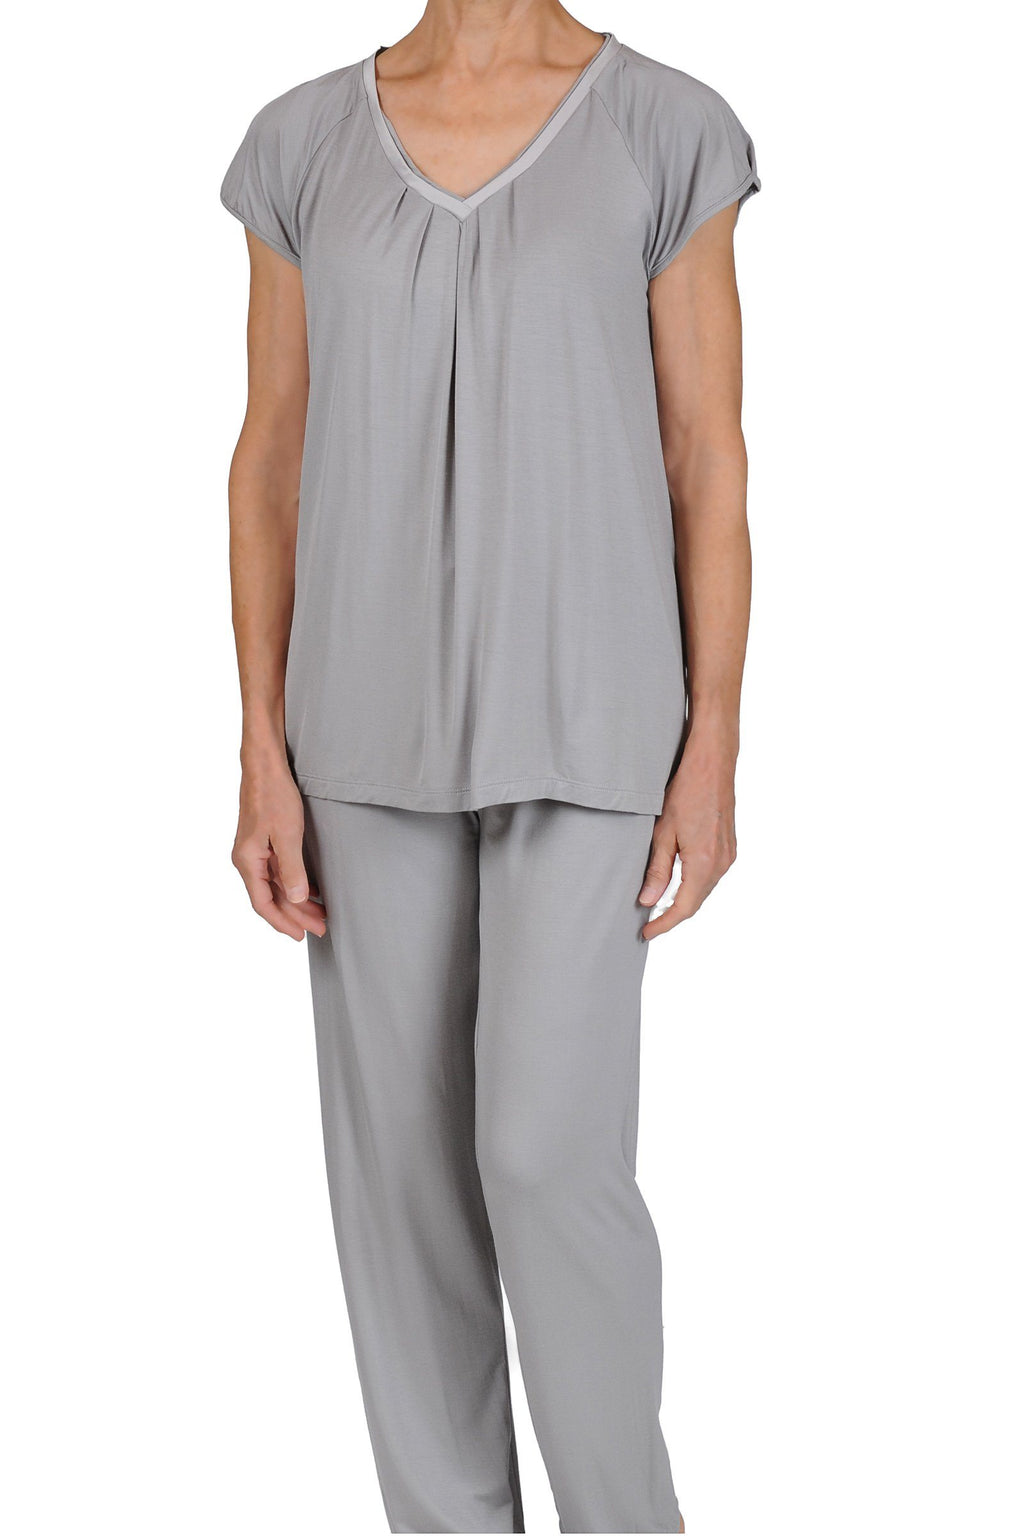 Sydney's Pajamas - Dove Gray Mystique Intimates